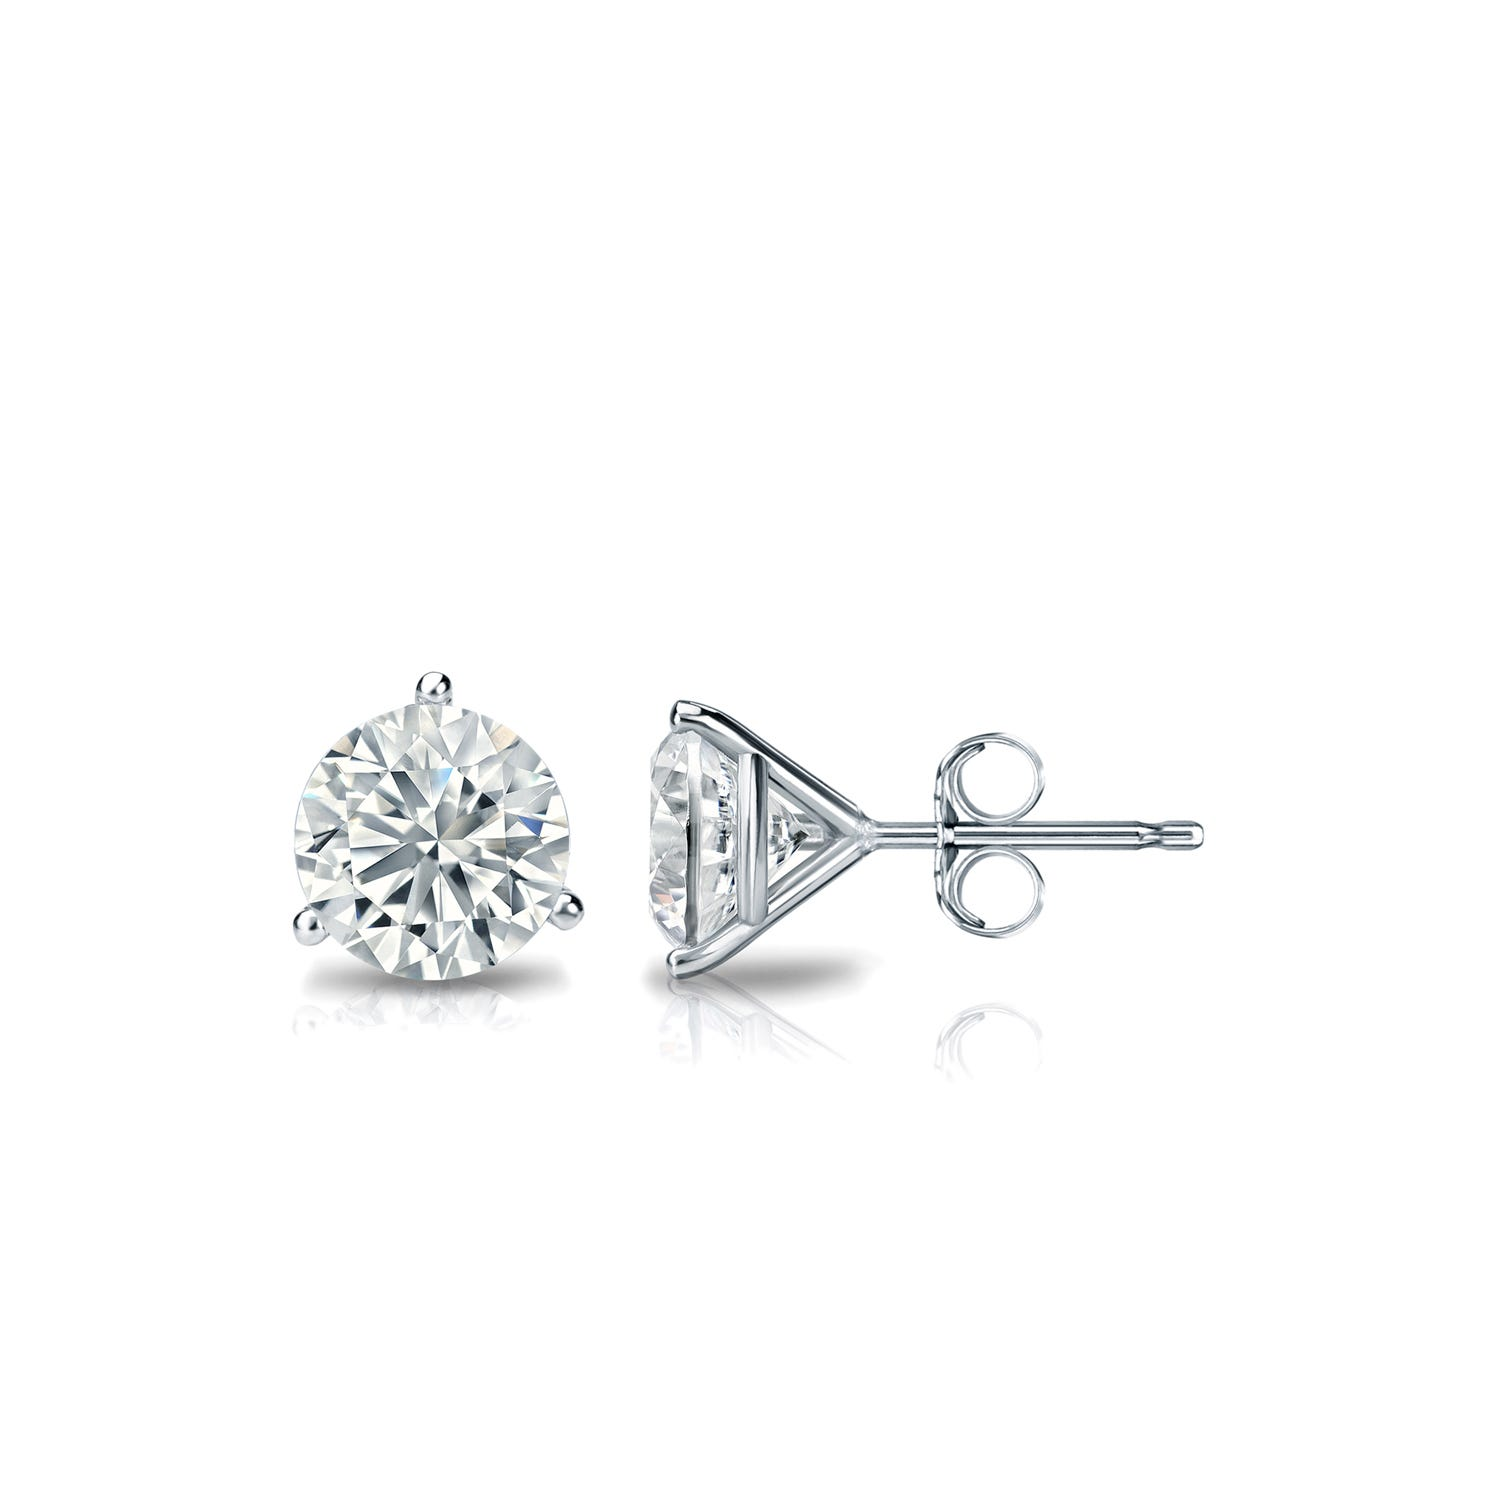 5/8 CTTW Round Diamond Solitaire Stud Earrings IJ I1 in 18K White Gold 3-Prong Setting